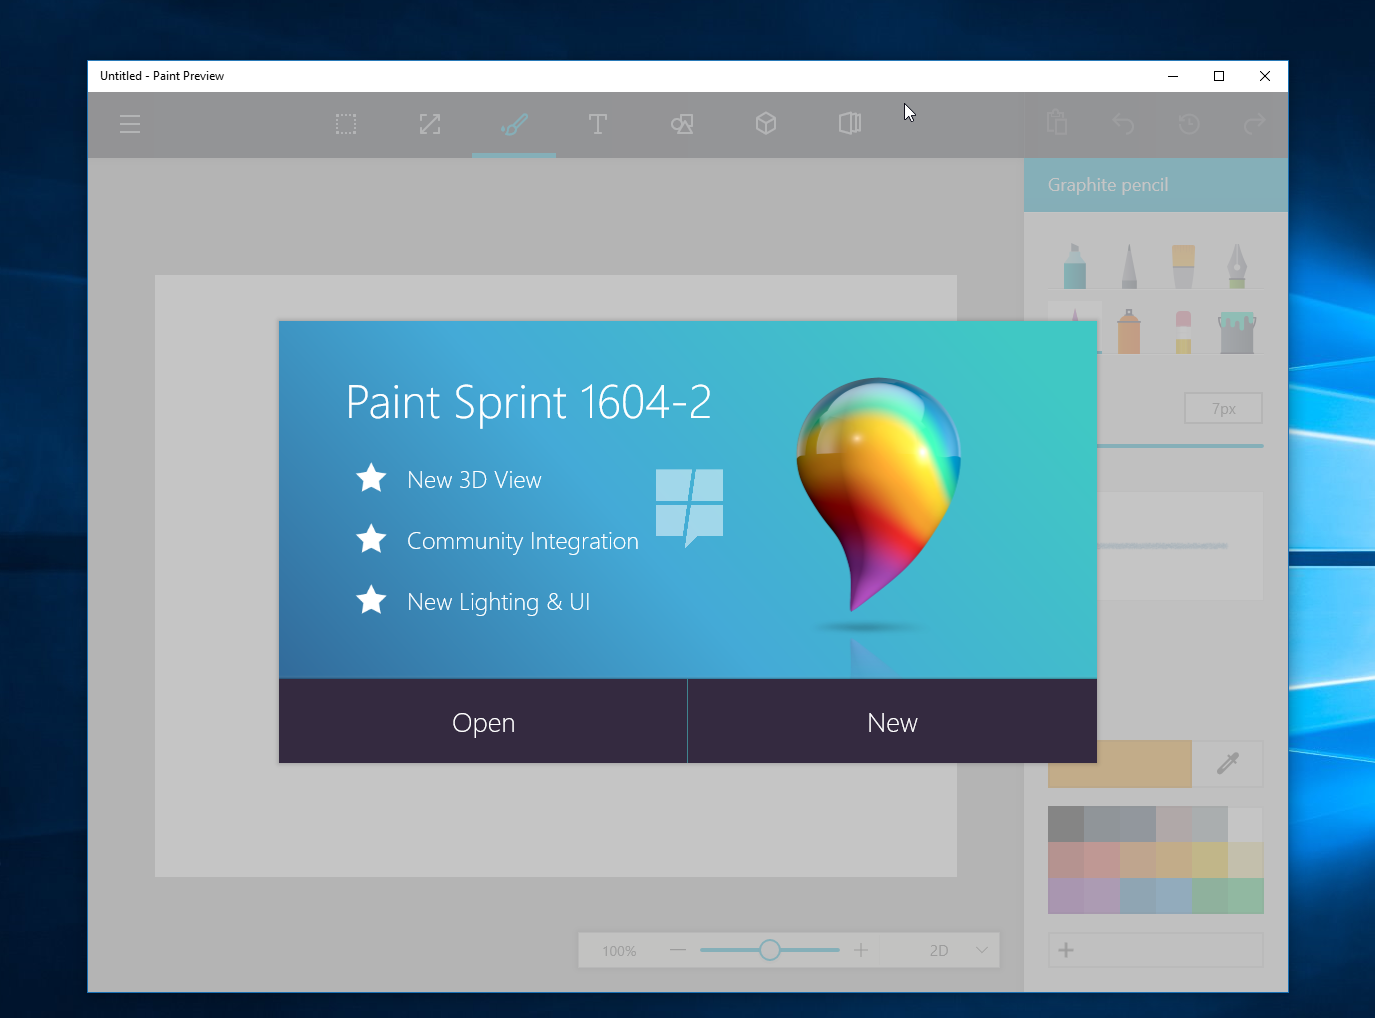 Microsoft could be modernizing Paint in Windows 1